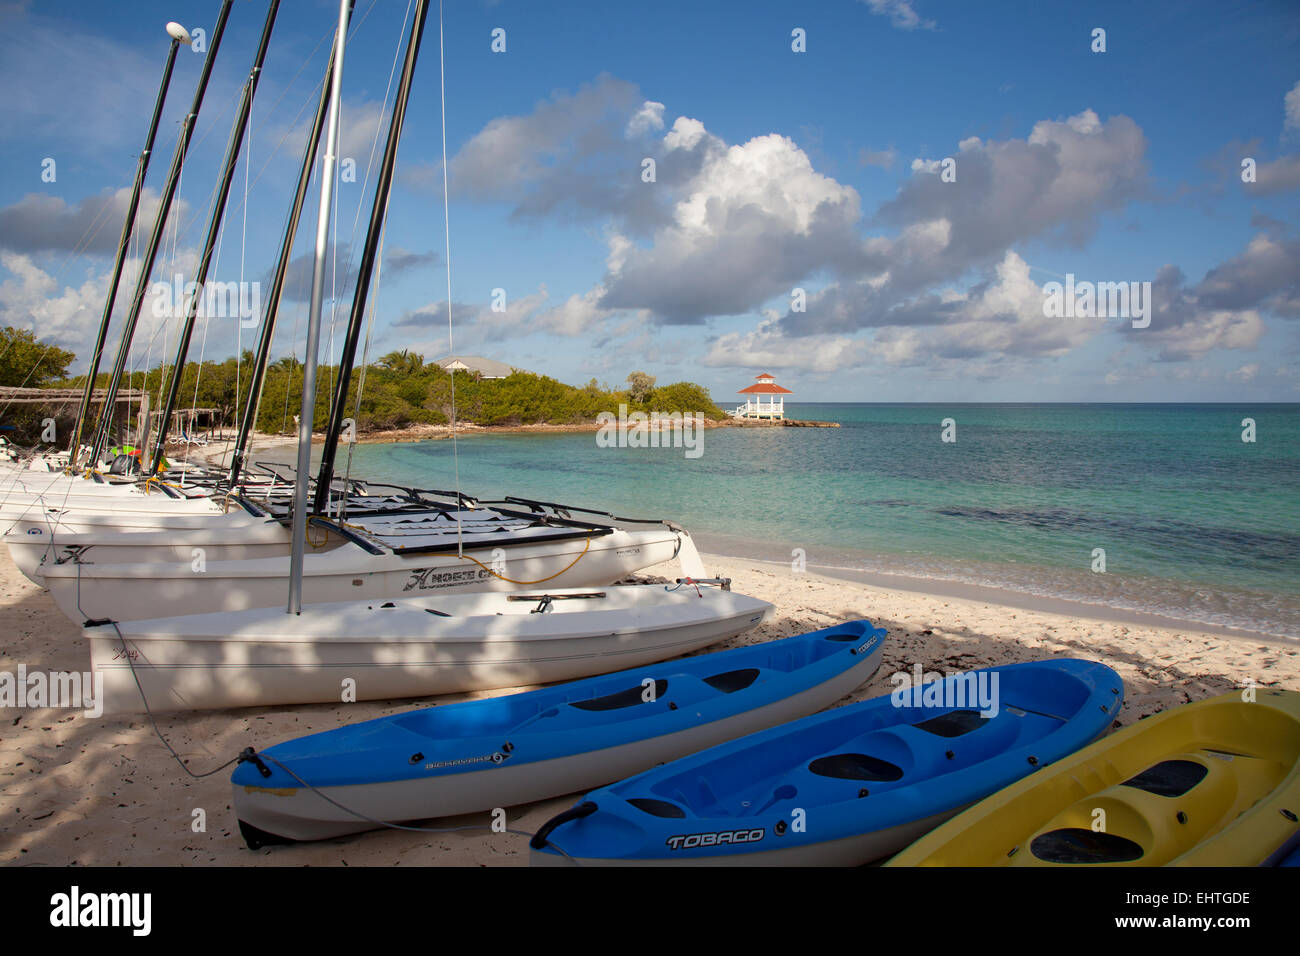 SANTA CLARA, CUBA - JANUARY 7, 2015: Kayaks and catamarans on beach in Santa Clara, Cuba, where watersport activities - Stock Image